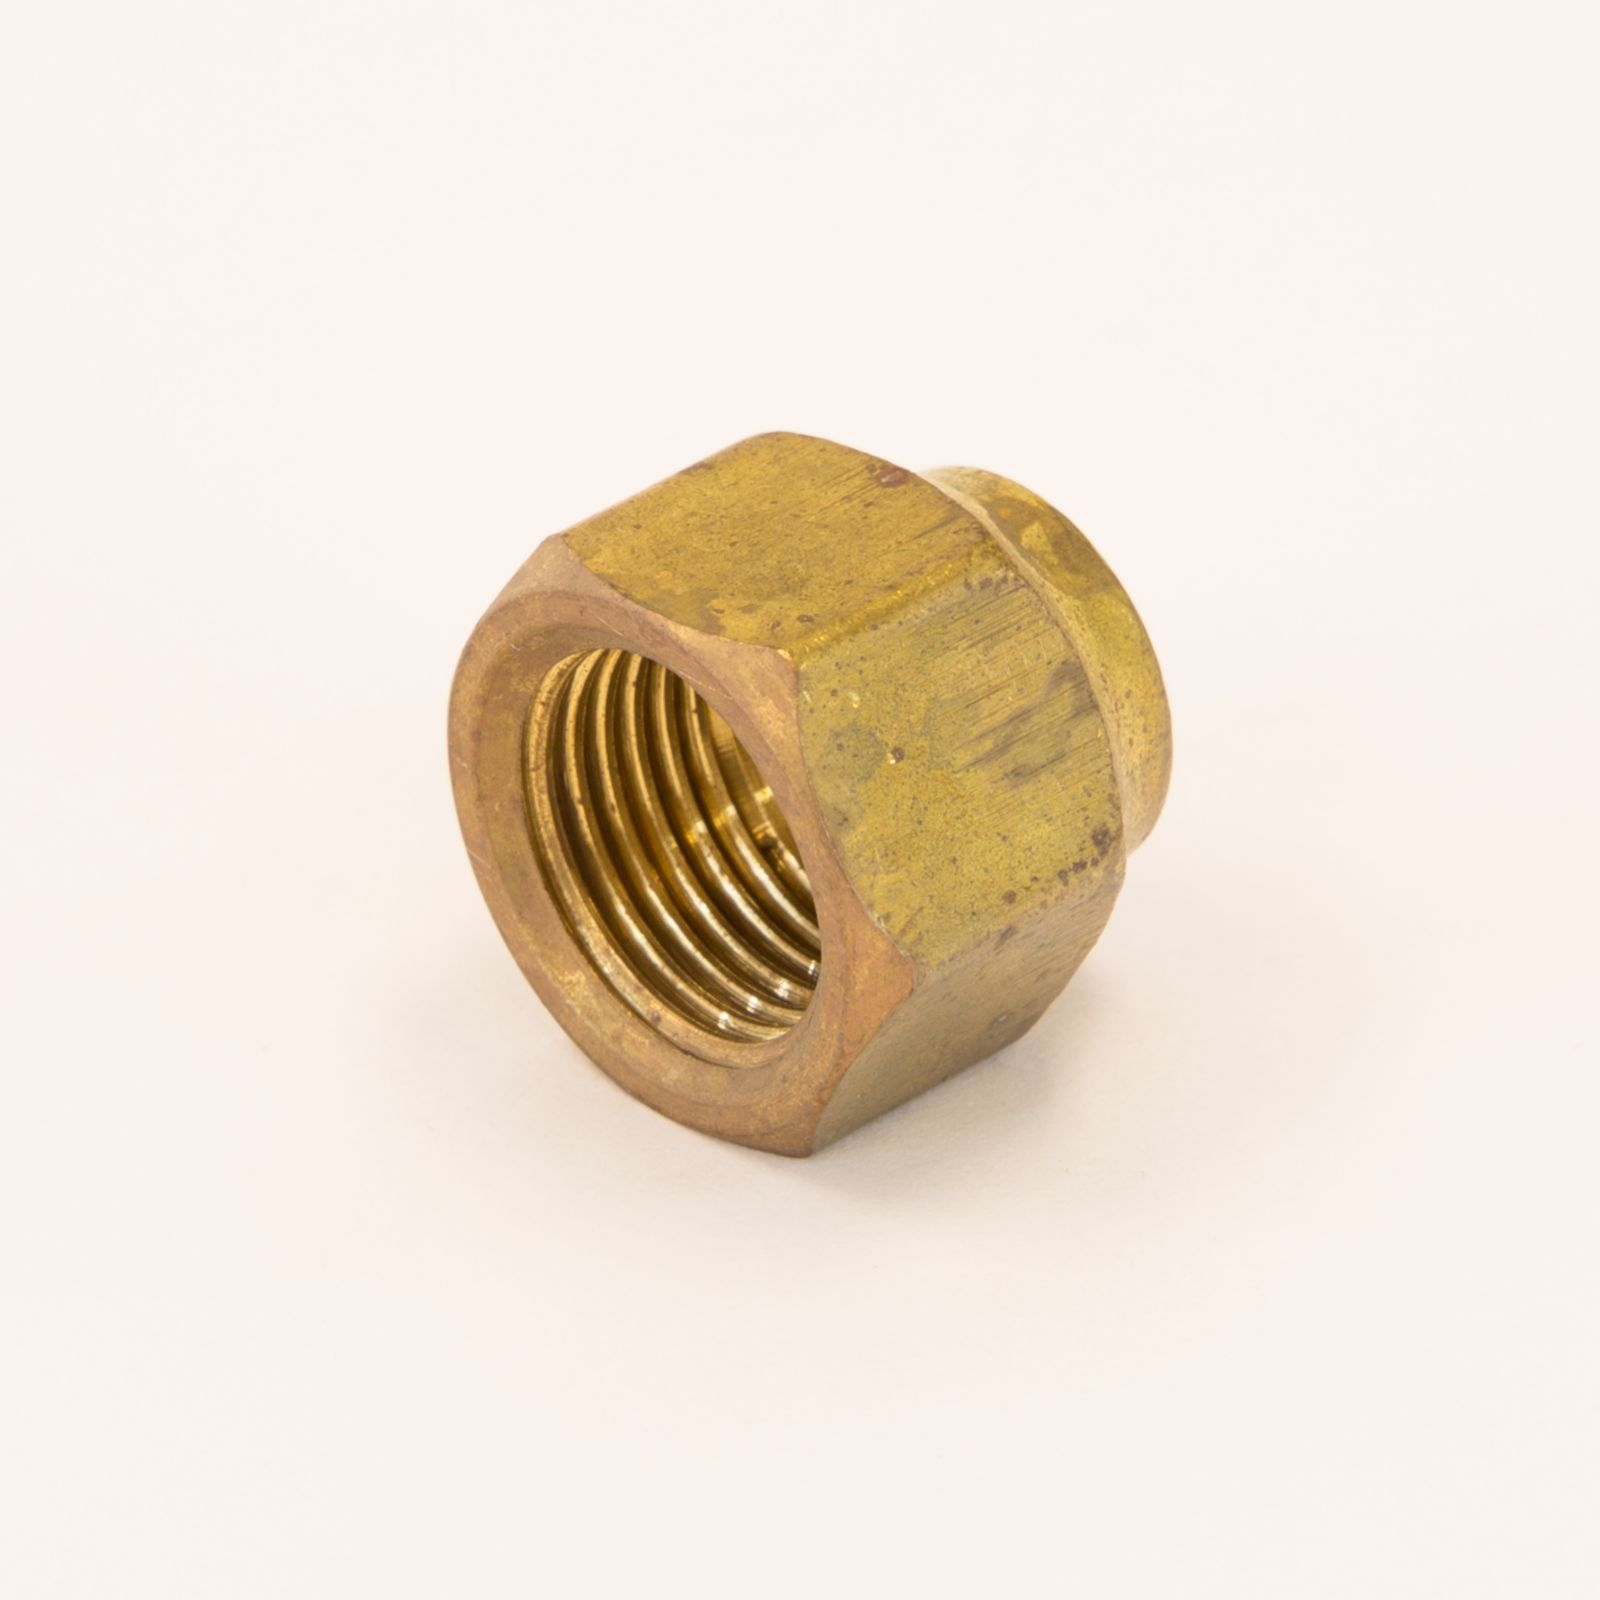 "BFFNRS464 - Brass Flare Nut Tube Connection, Short Forged, Reducing, 3/8"" O.D. Flare X 1/4"" O.D. Tube Size, 13/16"" O.D. Hex"